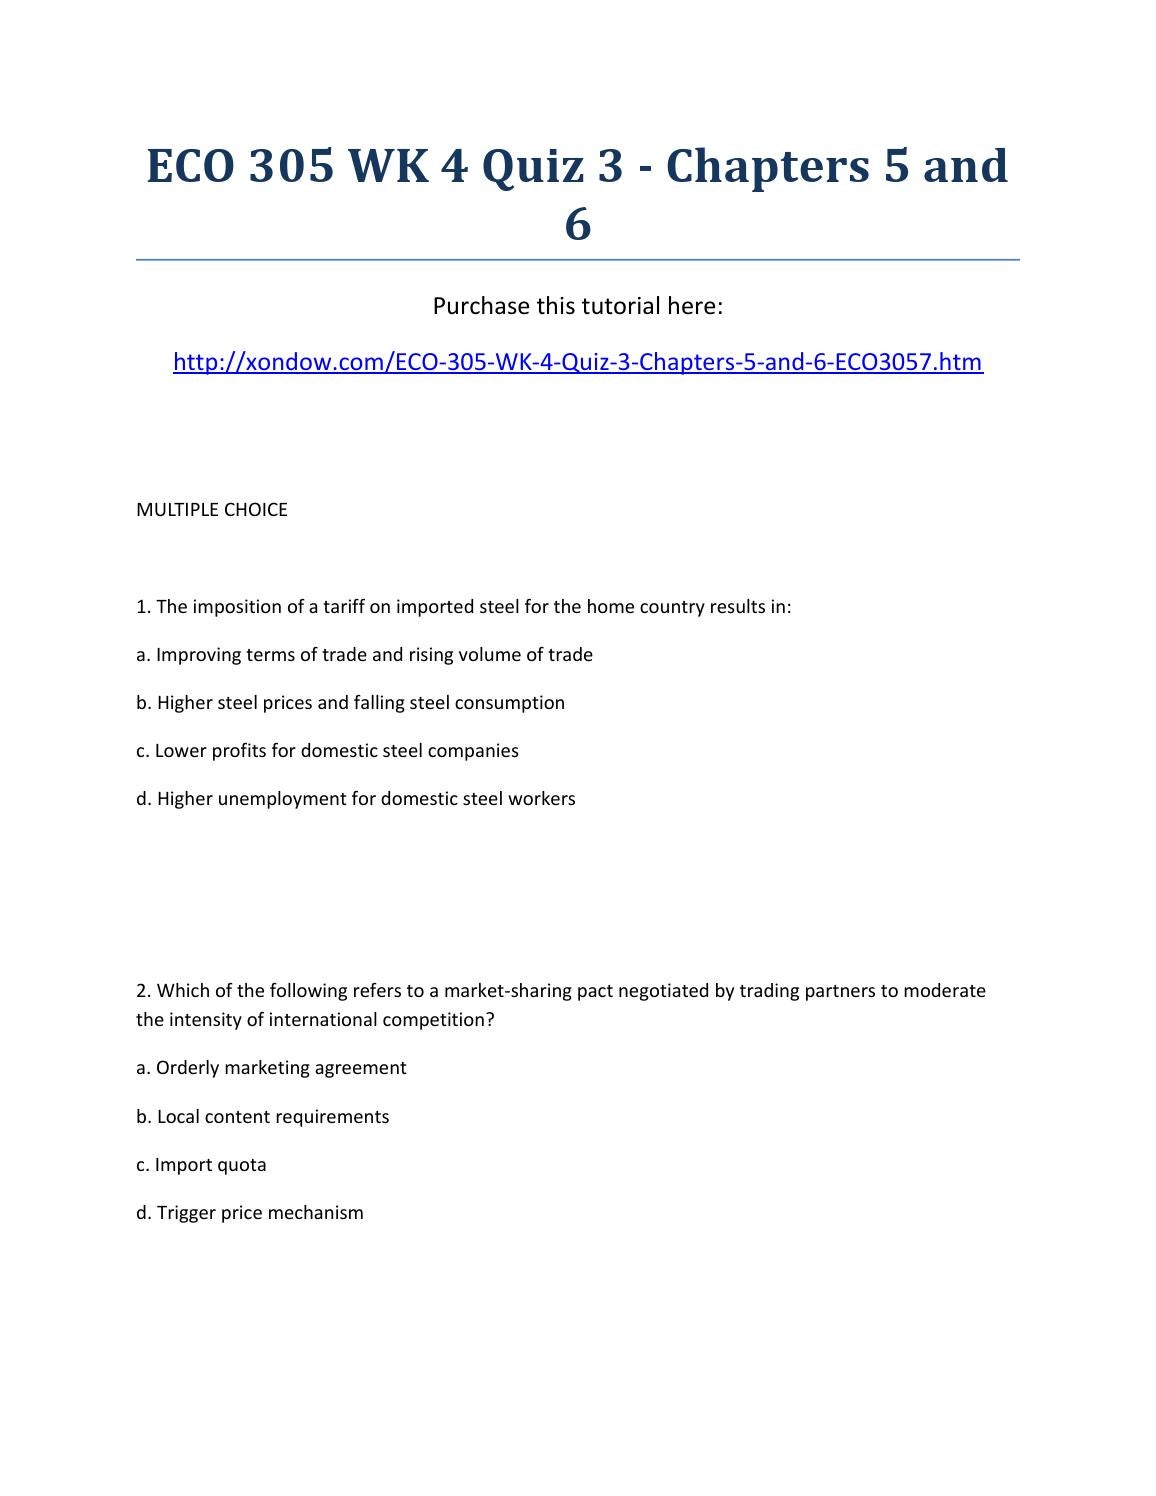 Eco 305 week 4 quiz 3 chapters 5 and 6 strayer university new by eco 305 week 4 quiz 3 chapters 5 and 6 strayer university new by dorothyyoung issuu platinumwayz